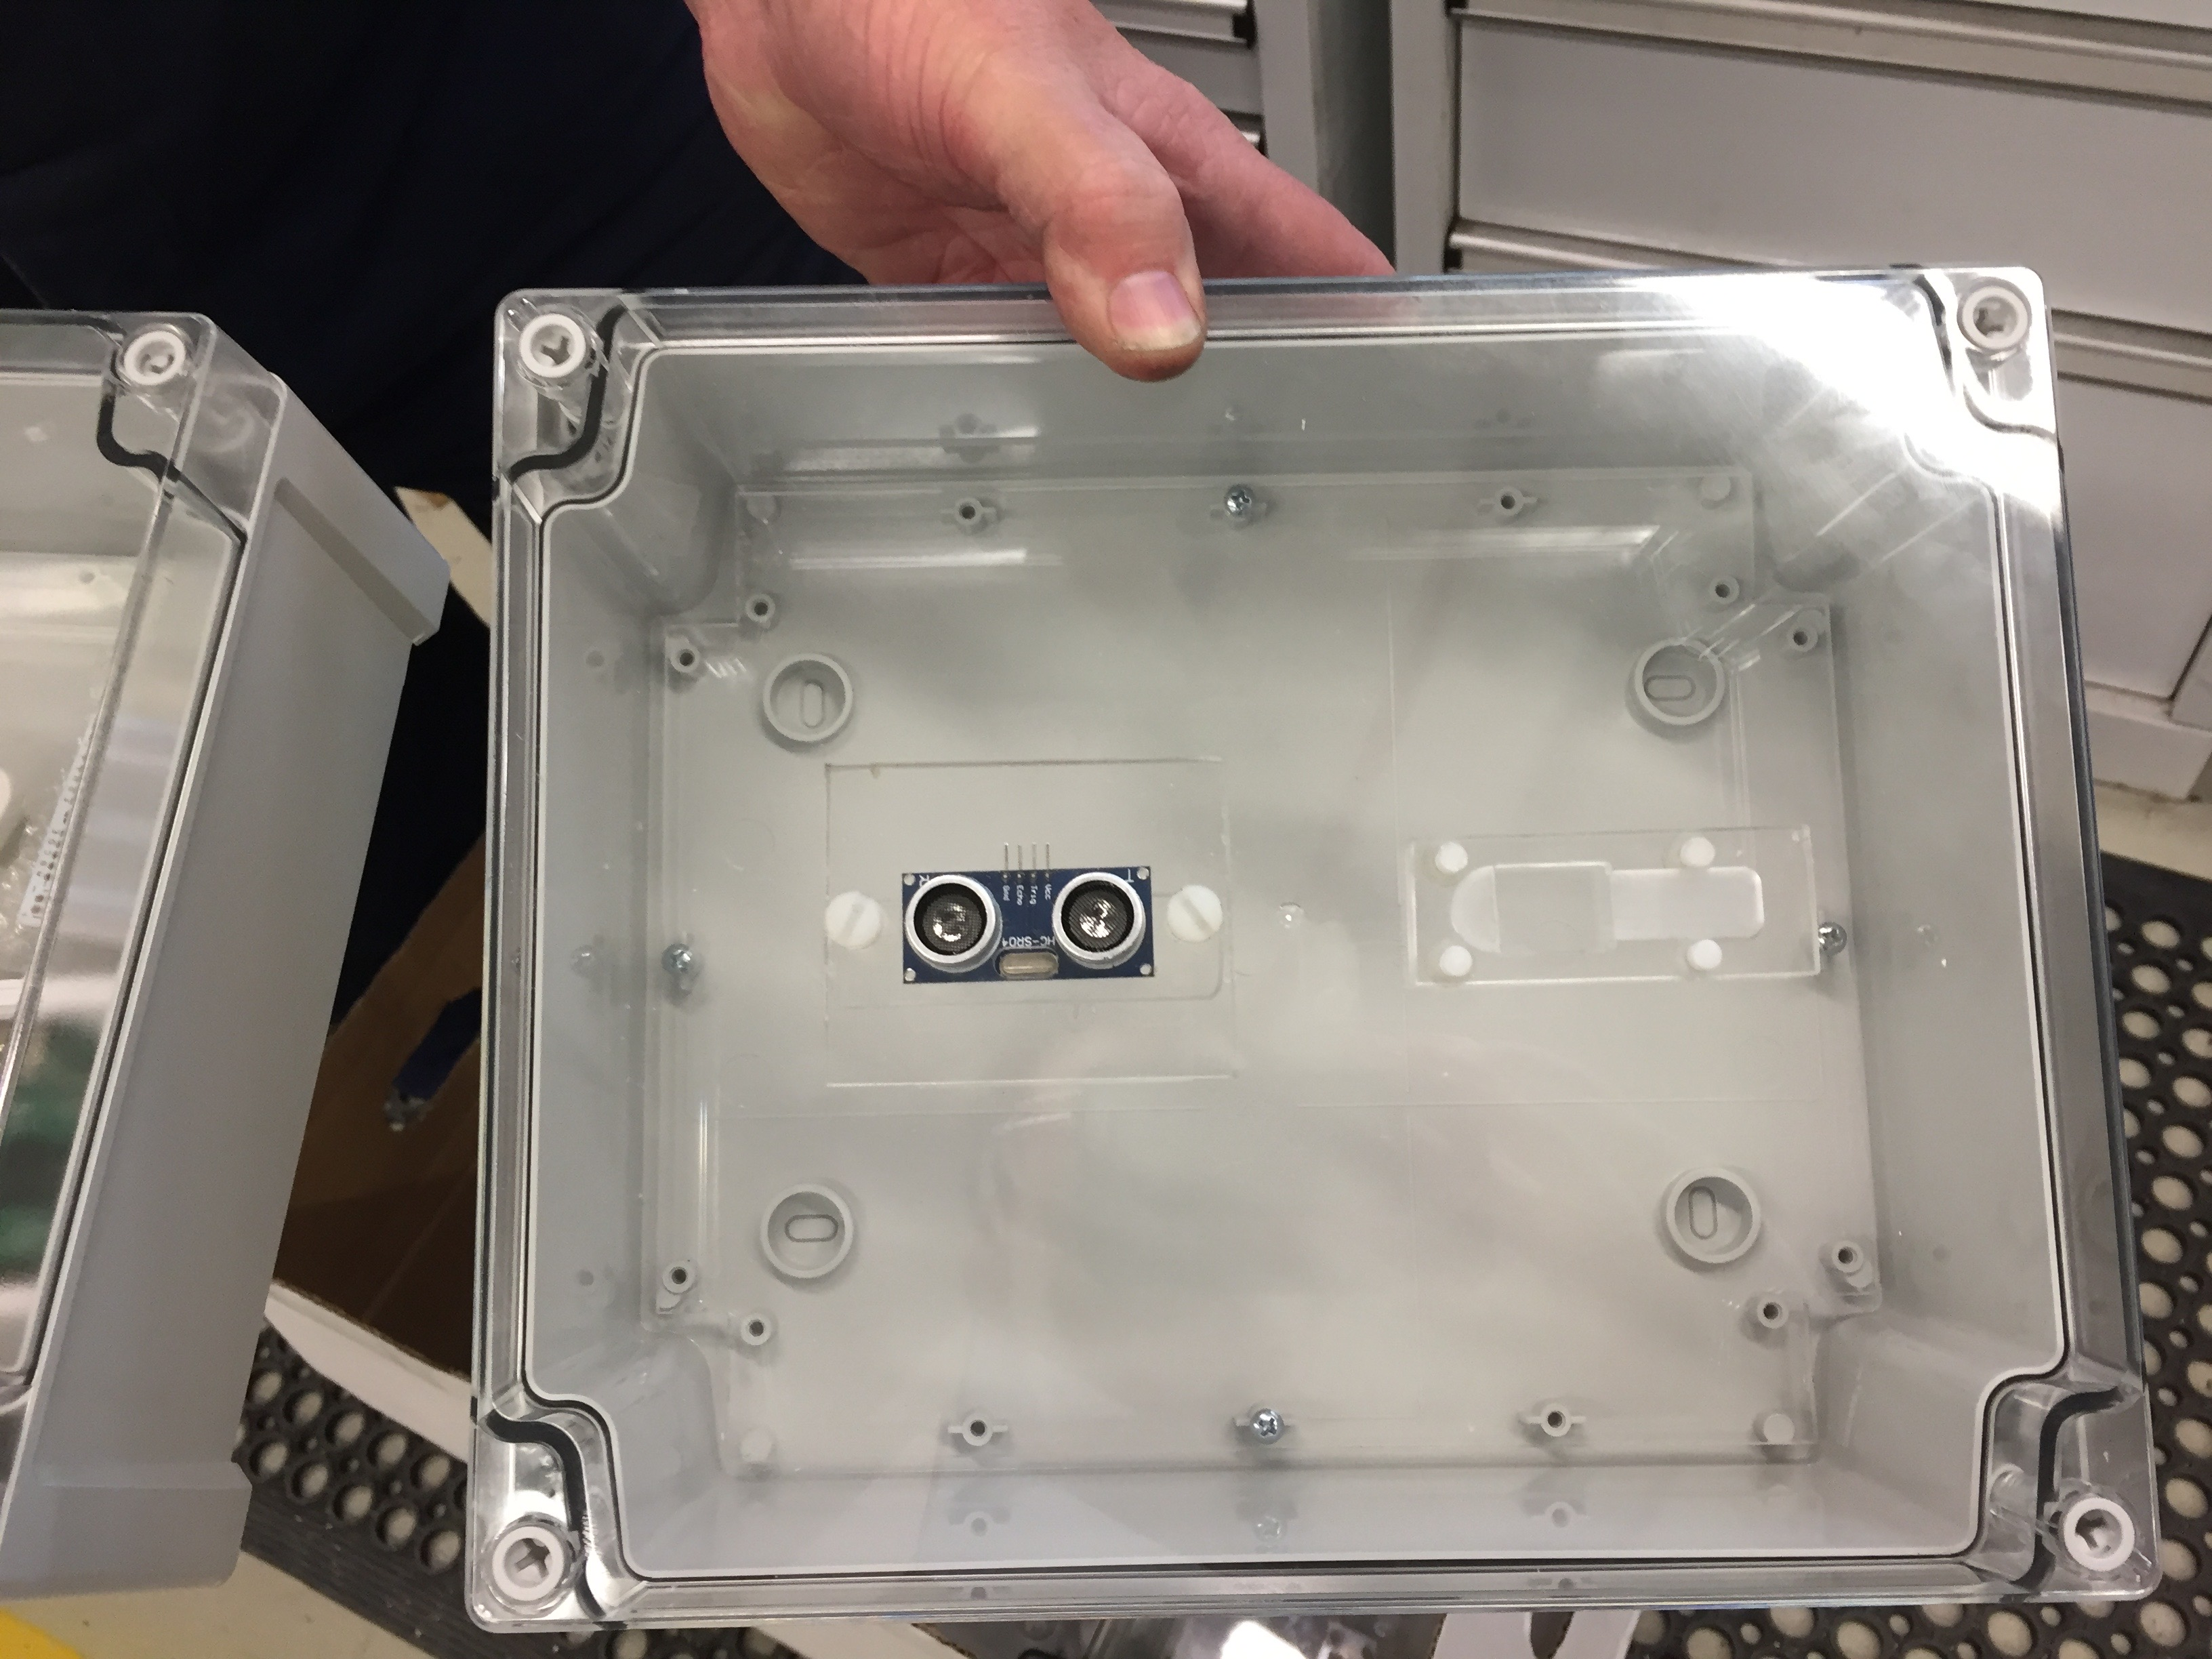 Box with sonar sensor in its compartment.